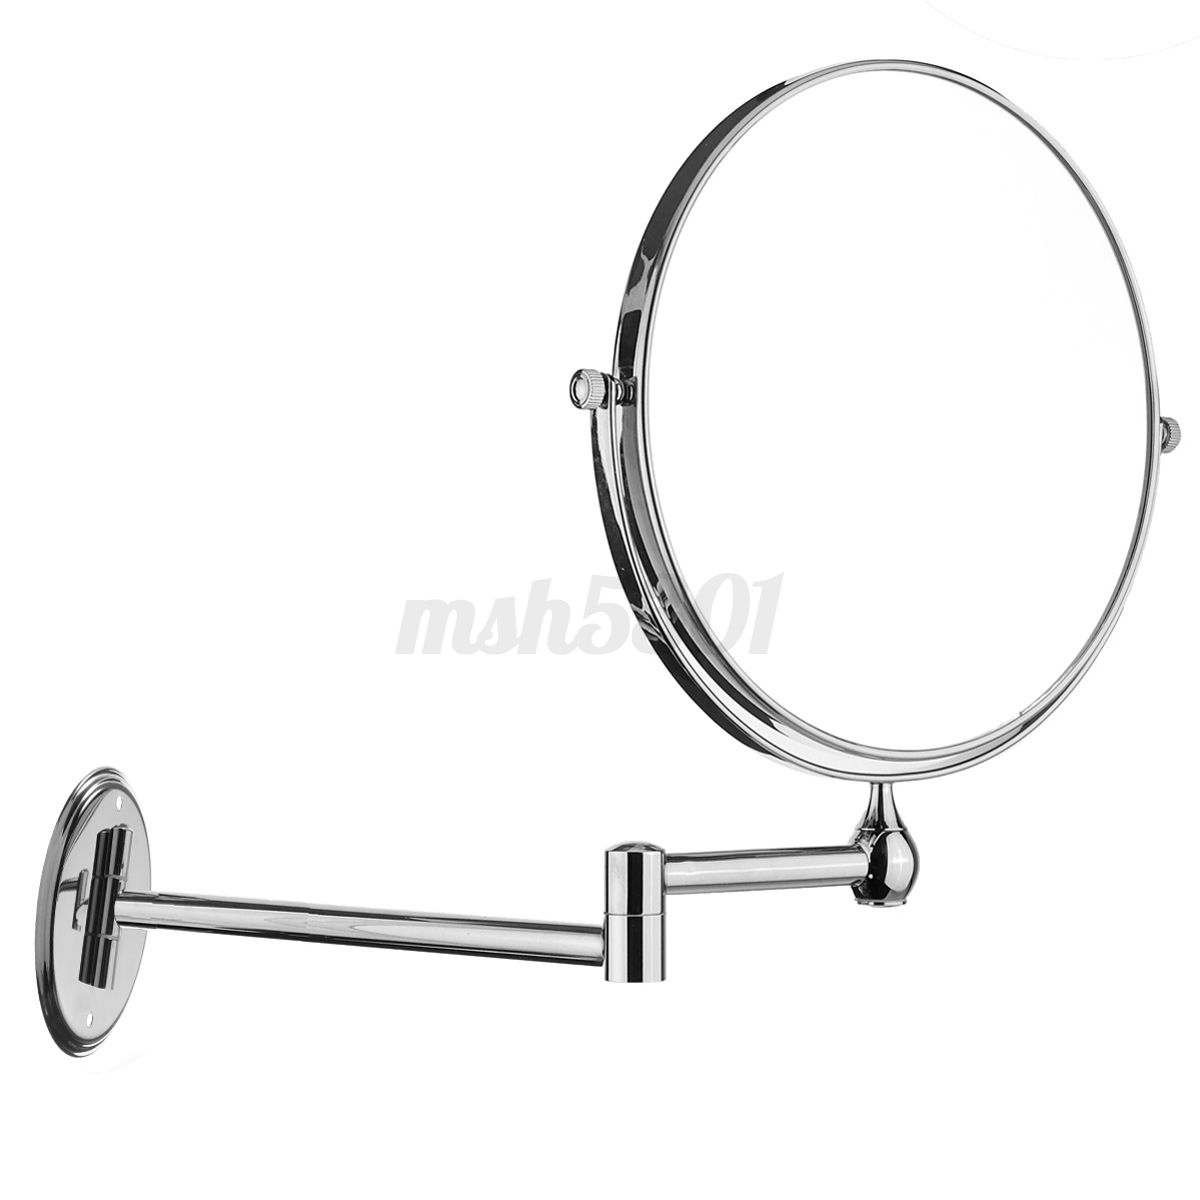 10x Magnifying Extending Bathroom Make up Shaving Wall Mounted ...